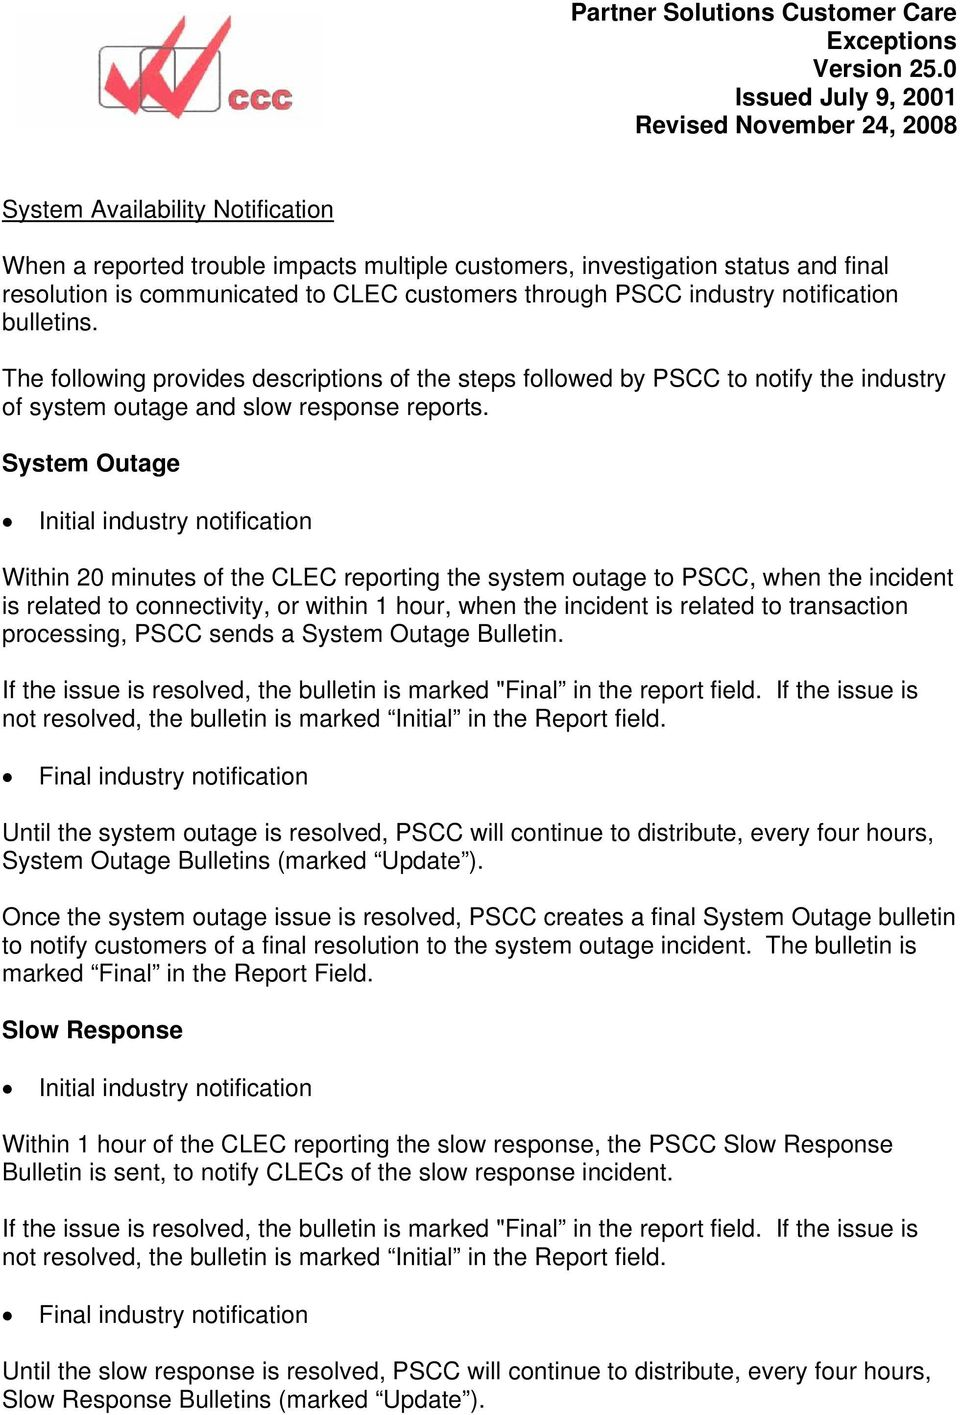 System Outage Initial industry notification Within 20 minutes of the CLEC reporting the system outage to PSCC, when the incident is related to connectivity, or within 1 hour, when the incident is